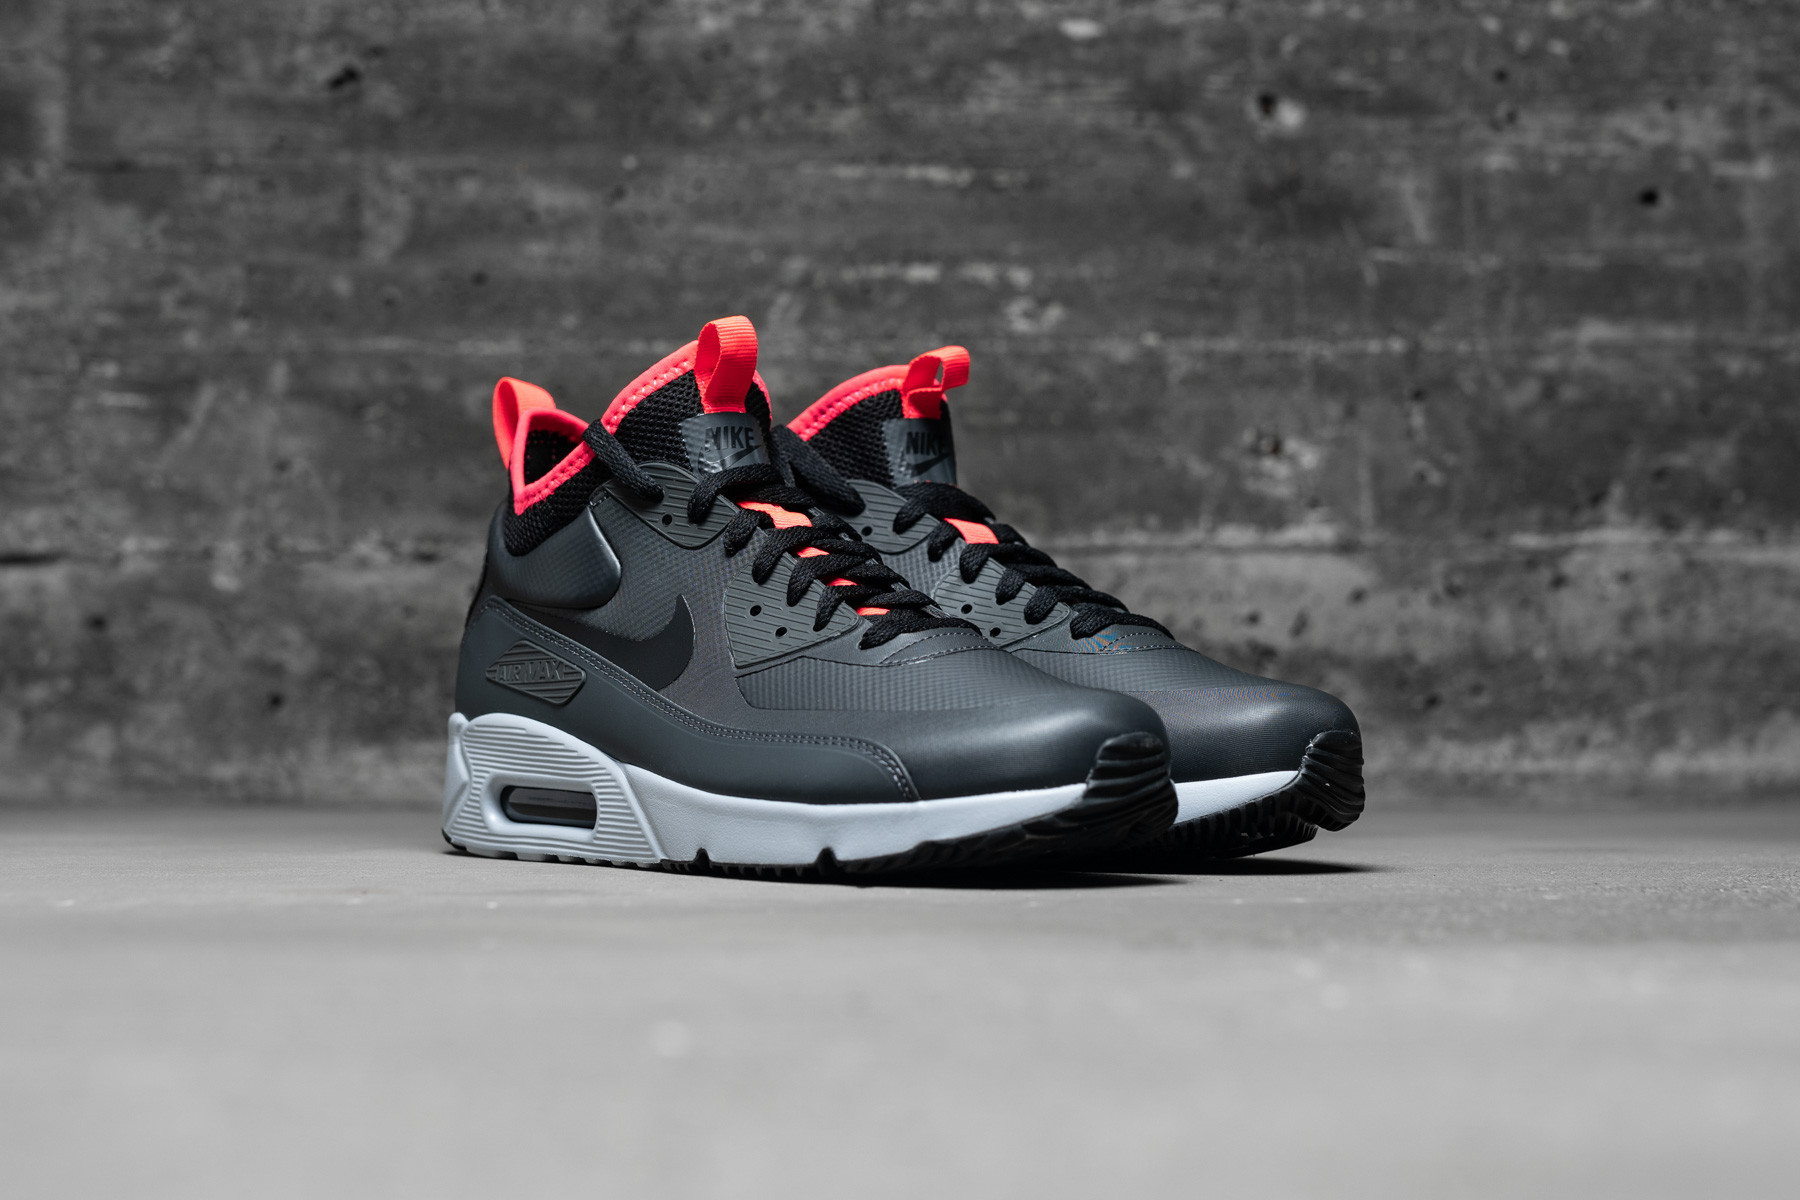 NIKE AIR MAX 90 Ultra Mid Winter Anthracite Black Solar Red